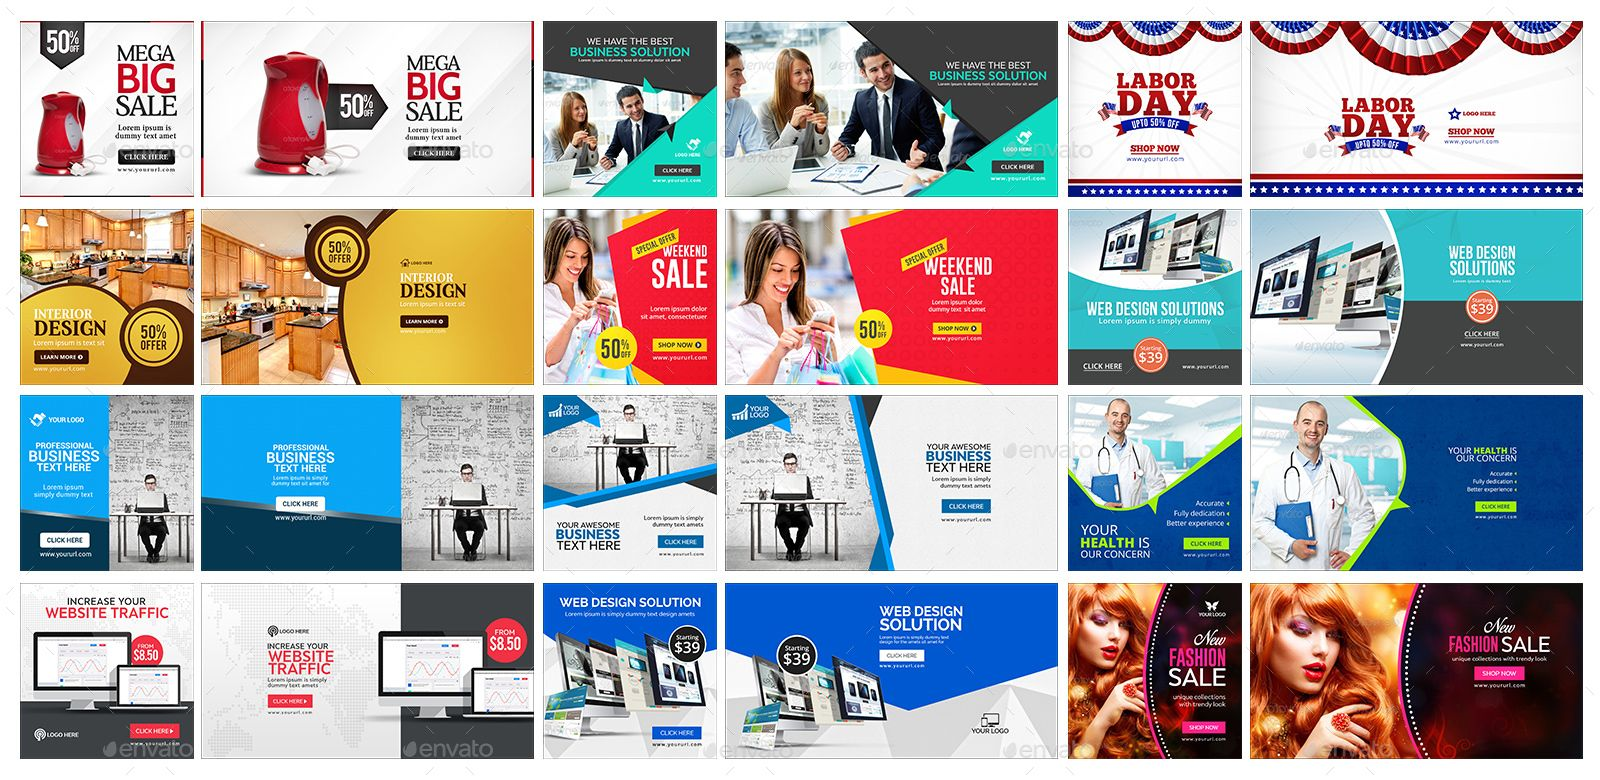 Facebook AD Banners Vol-6 - 50 Designs #AD #Banners, #ad